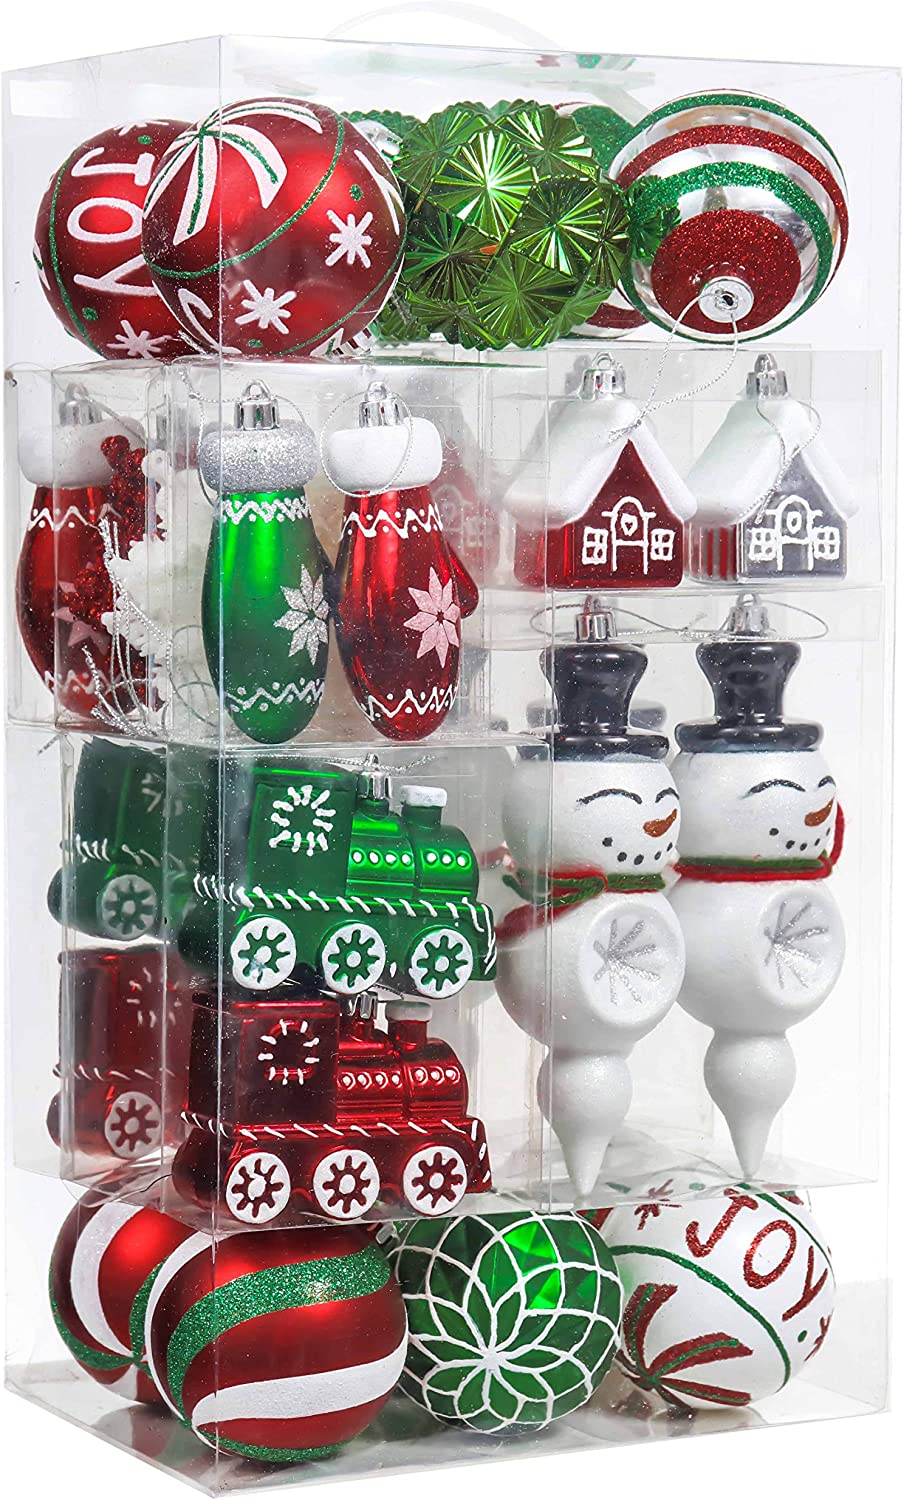 Valery Madelyn 50ct Classic Collection Splendor Shatterproof Christmas Ball Ornaments Decoration New Red Green White Themed With Tree Skirt Not Included Amazon Ca Home Kitchen